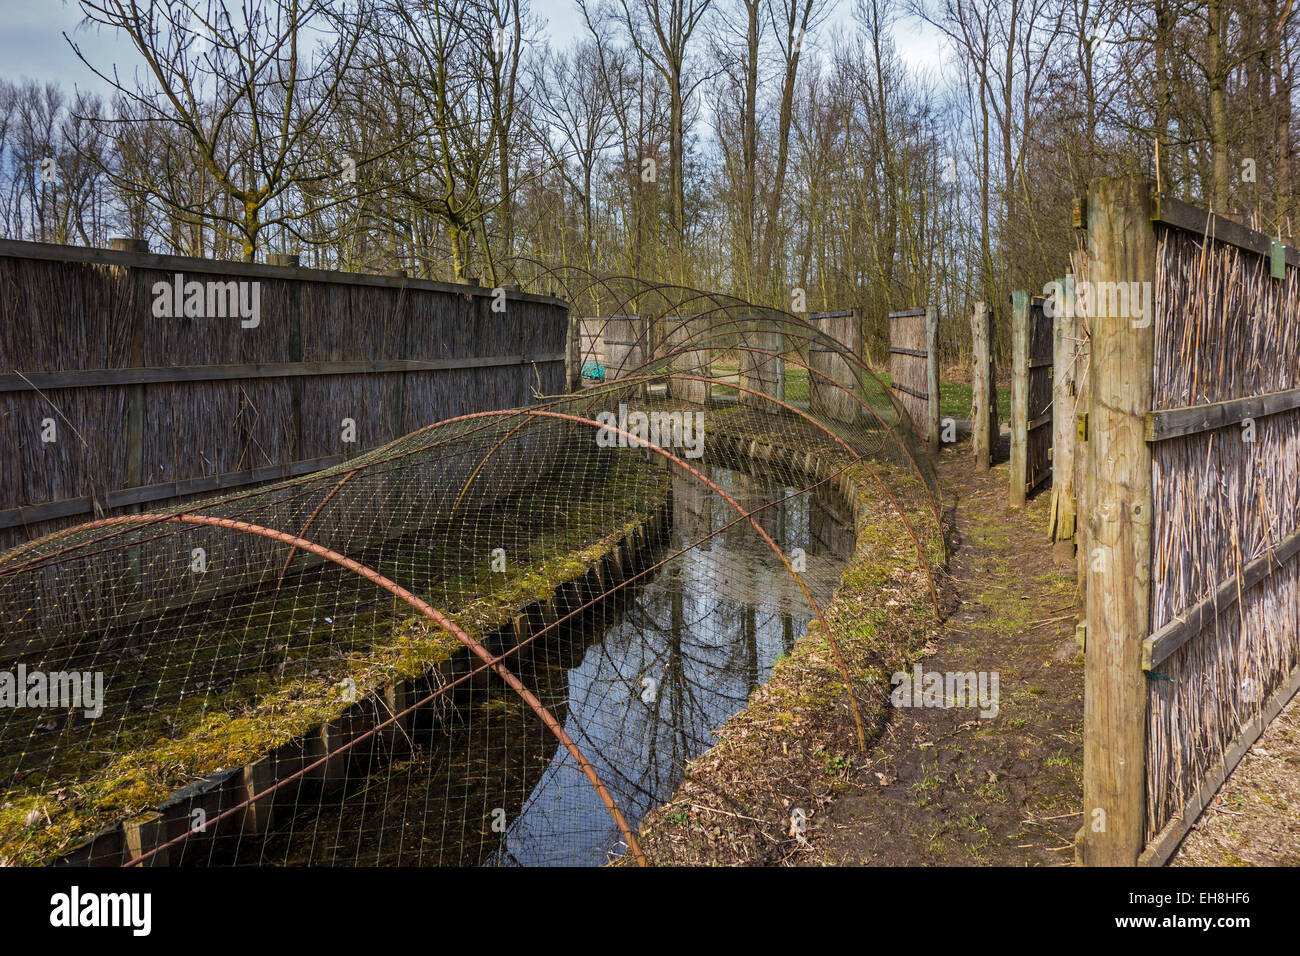 Duck decoy structure used for catching wild ducks showing pipe formed by hoops with netting flanked by screens - Stock Image